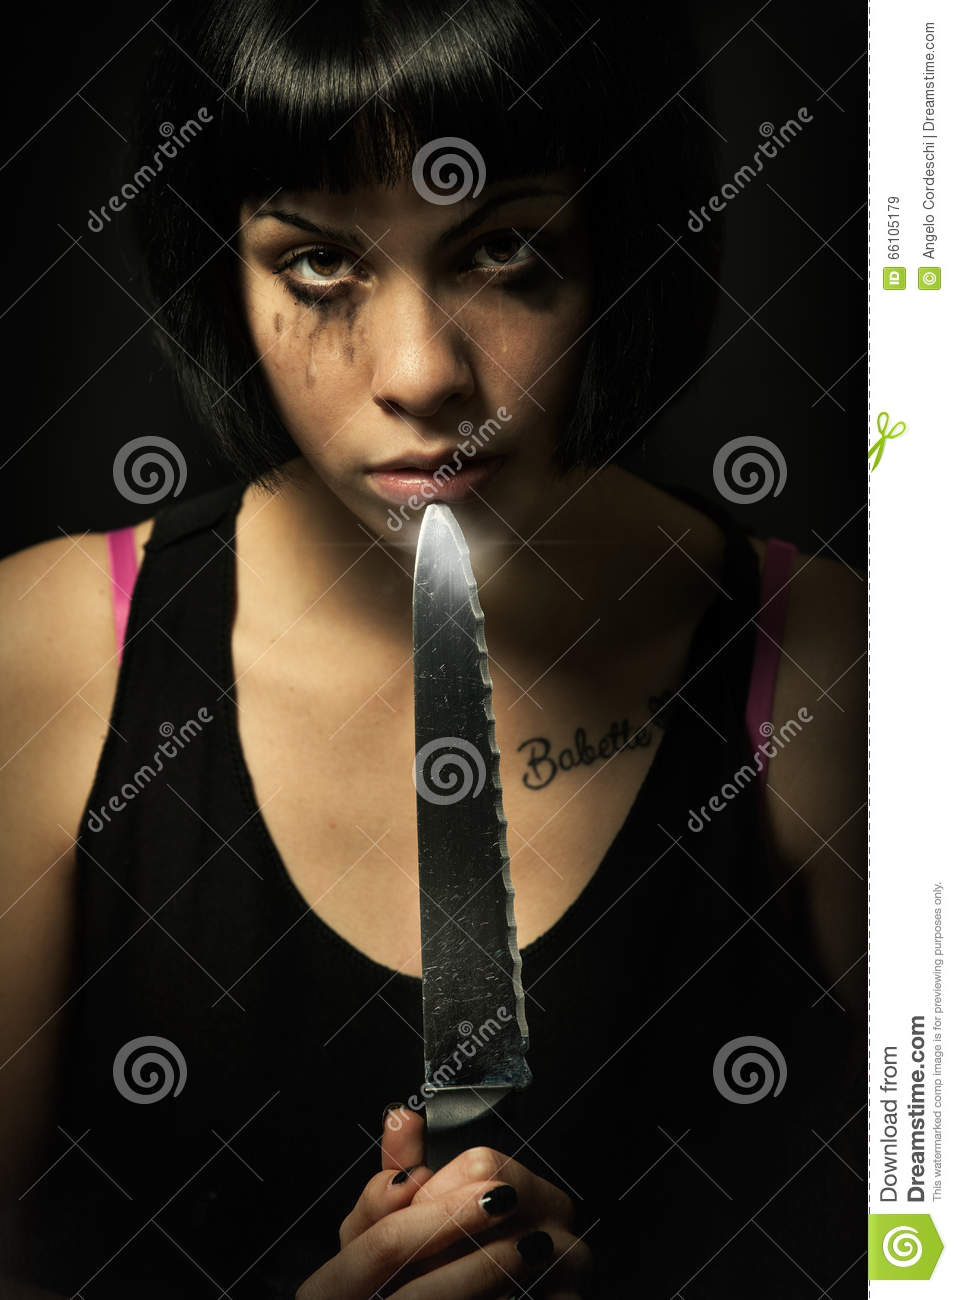 Young crying woman killer. Knife murder suicide. Crazy girl